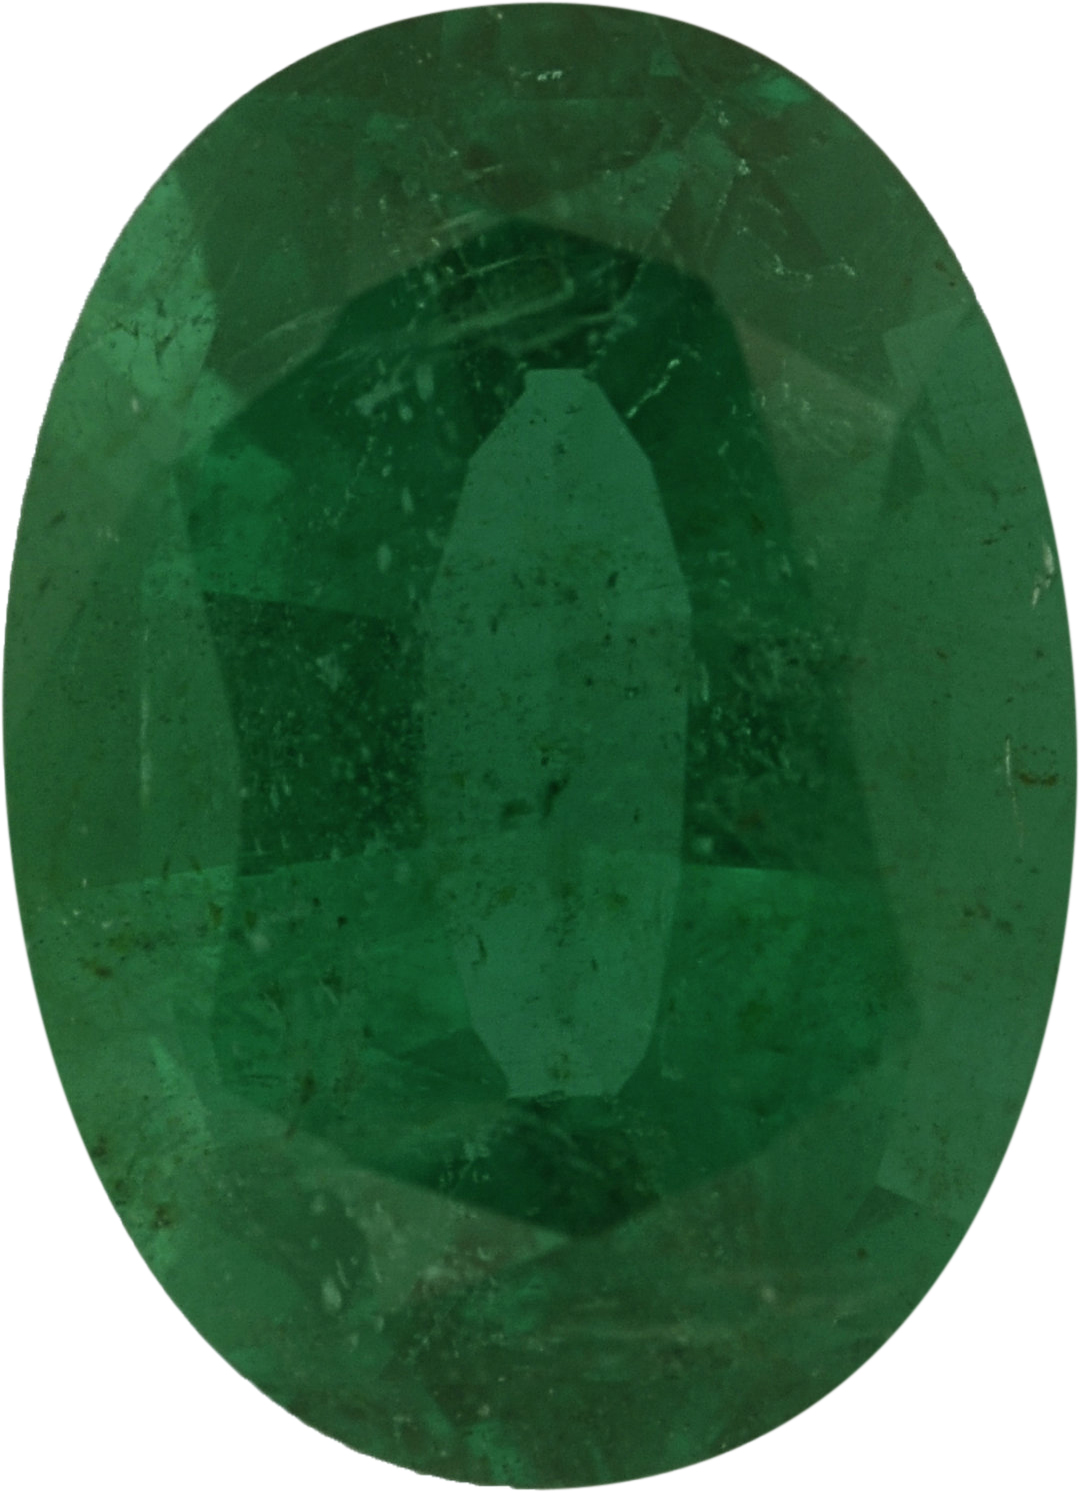 7.64 x 5.59 mm, Emerald Loose Gemstone in Oval Cut, 1.09 carats